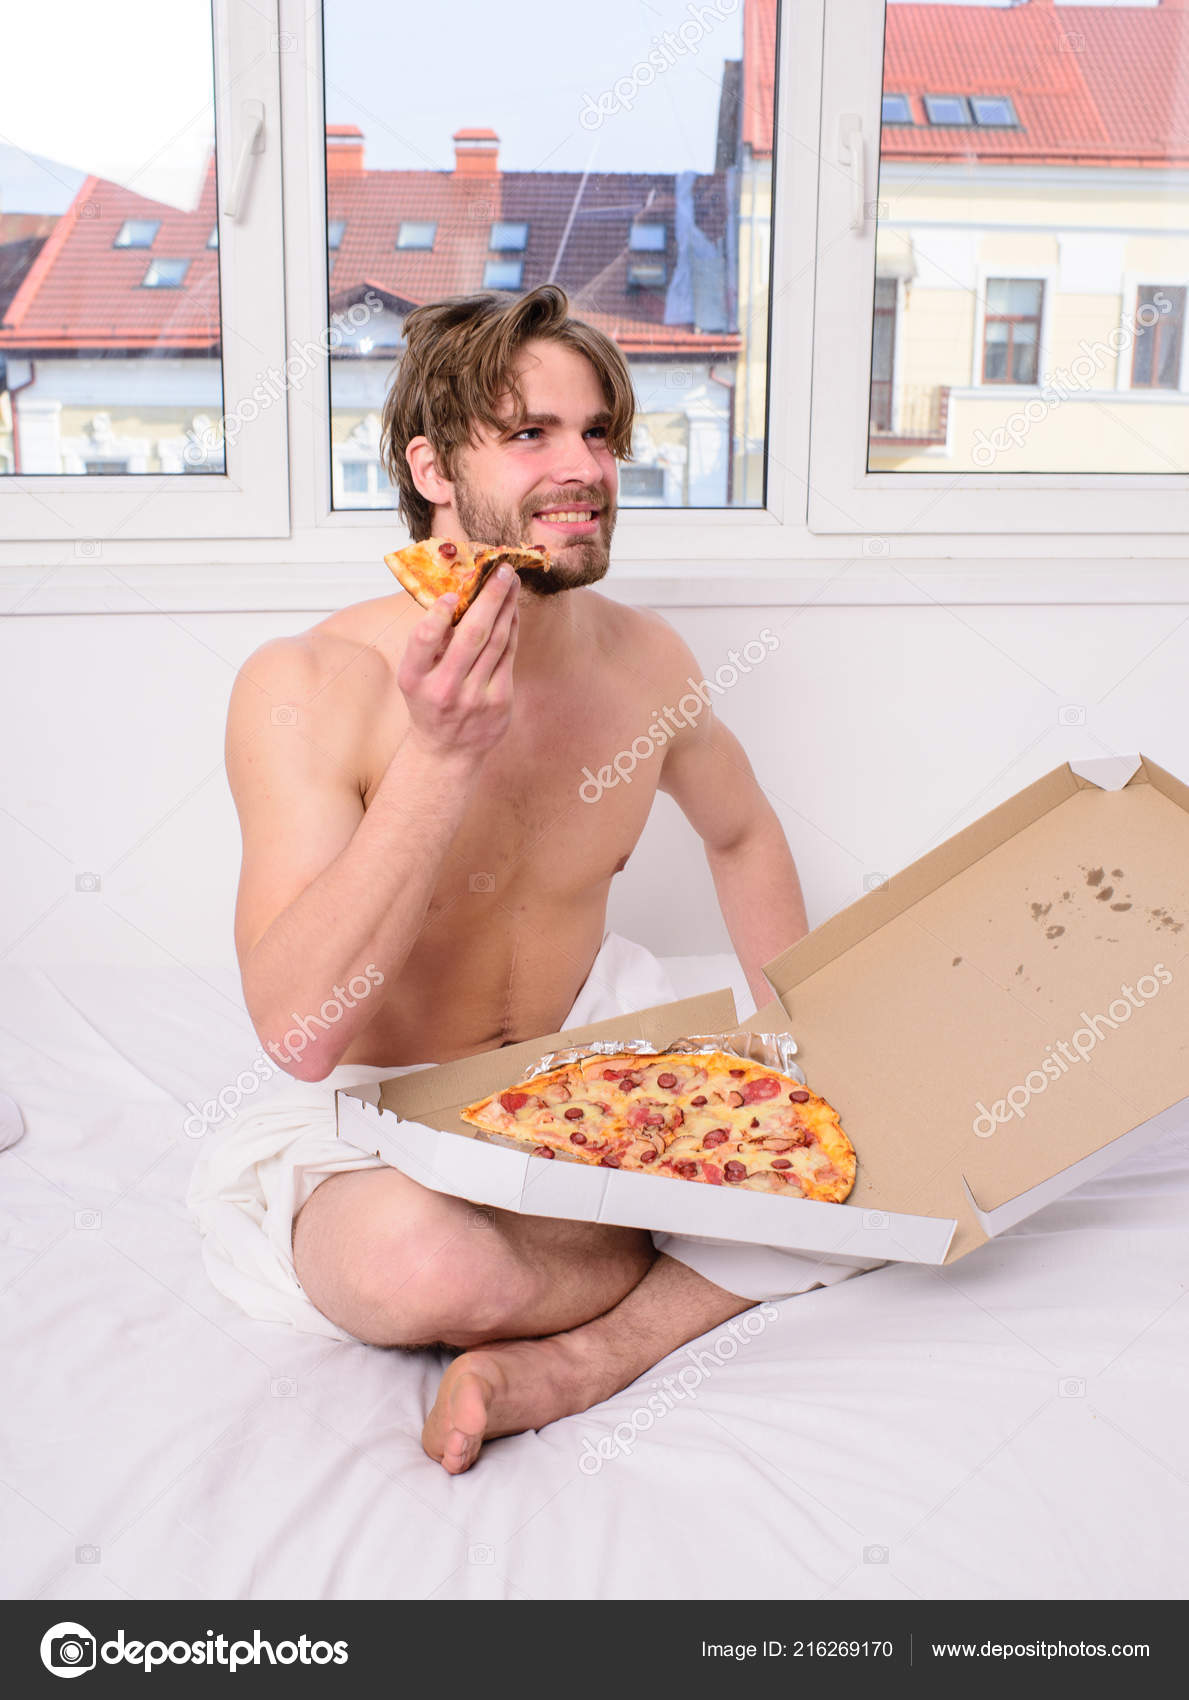 Food Delivery Service Man Bearded Handsome Bachelor Eating Cheesy For Breakfast In Bed Likes Pizza Guy Holds Box Sit